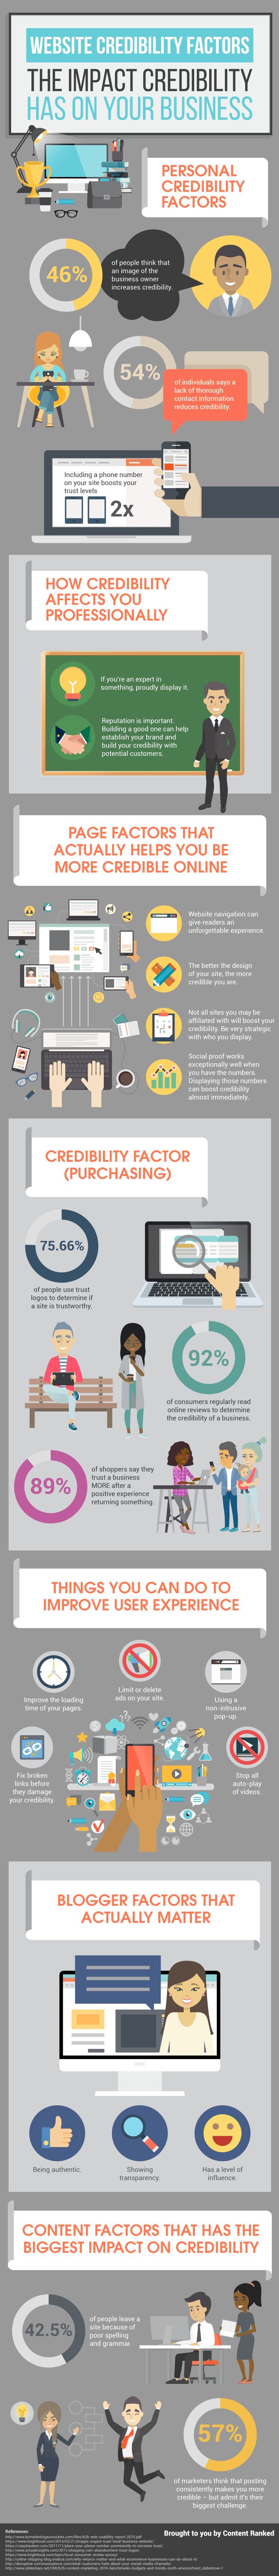 Simple Ways To Make Your Online Presence Credible - Infographic